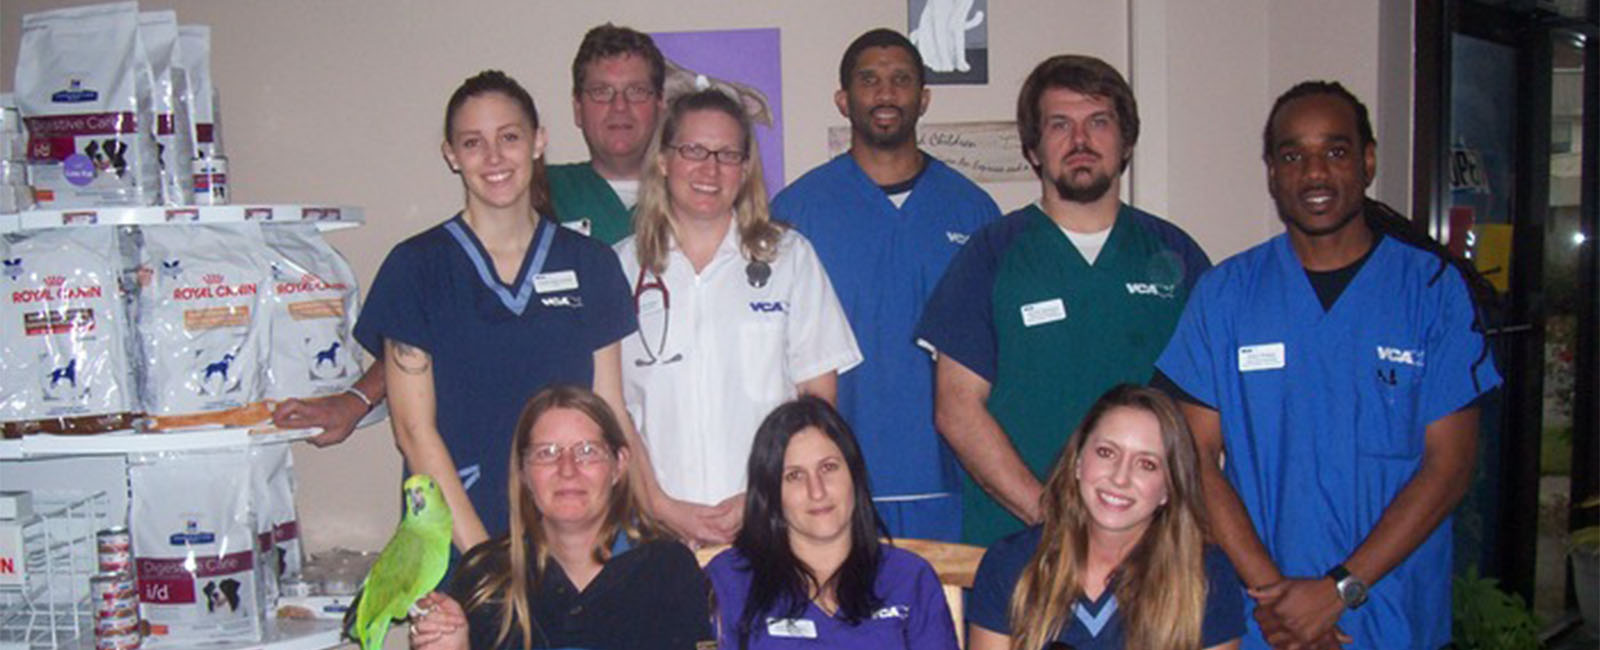 Homepage Team Picture of VCA Animal Care Center